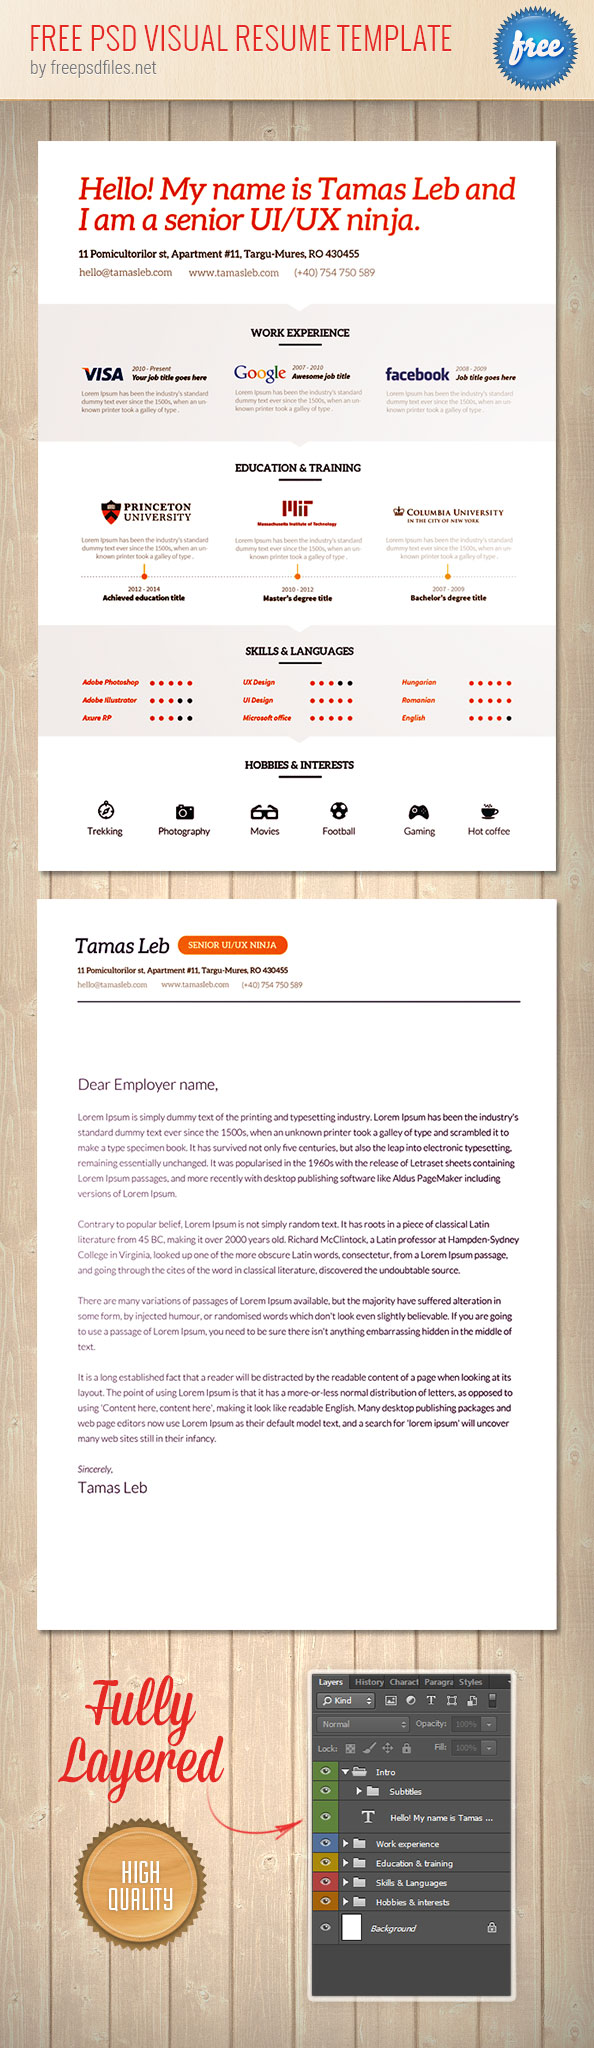 Free Psd Visual Resume Template Made By Tamás Léb. This Is A Creative CV  That Will Surely Catch The Eye Of Many. Go Ahead And Download Now For Free!